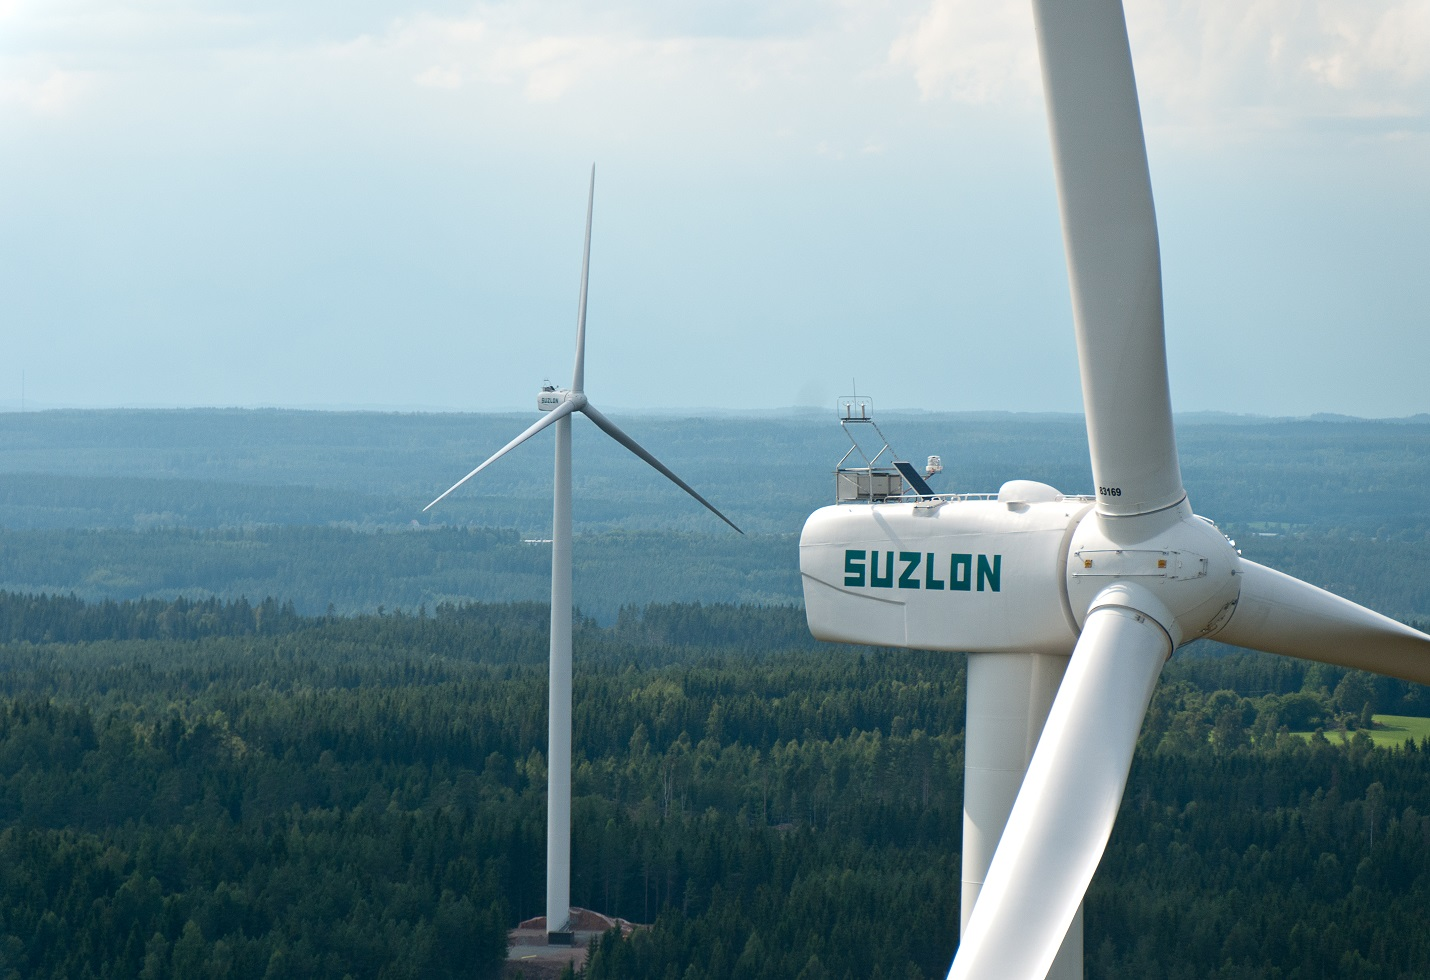 Suzlon Energy to restructure its FCCB's